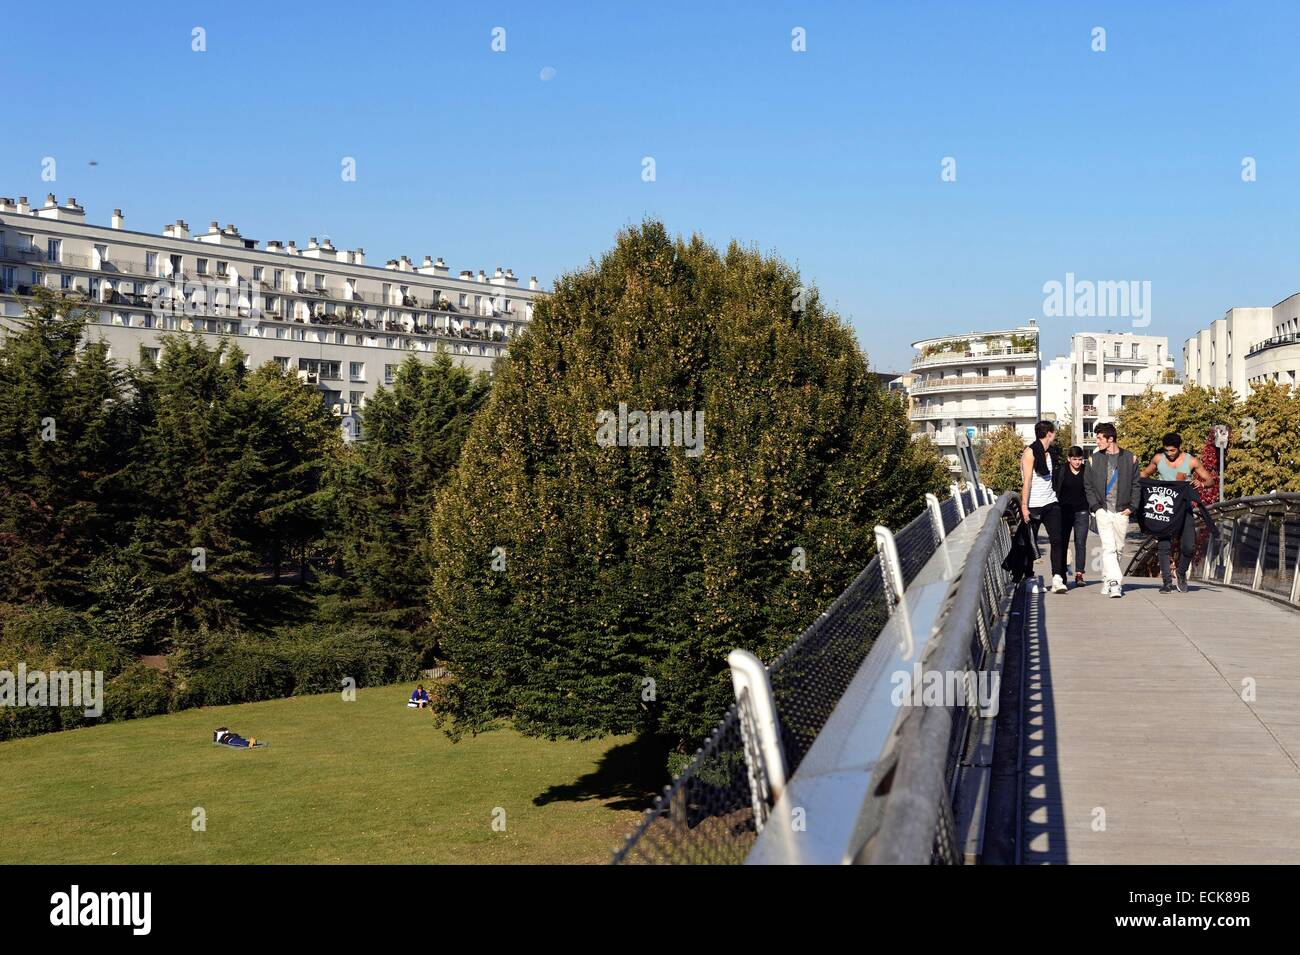 France, Paris, garden of Reuilly which is halfway located of Planted Walk (Promenade Plantee) - Stock Image